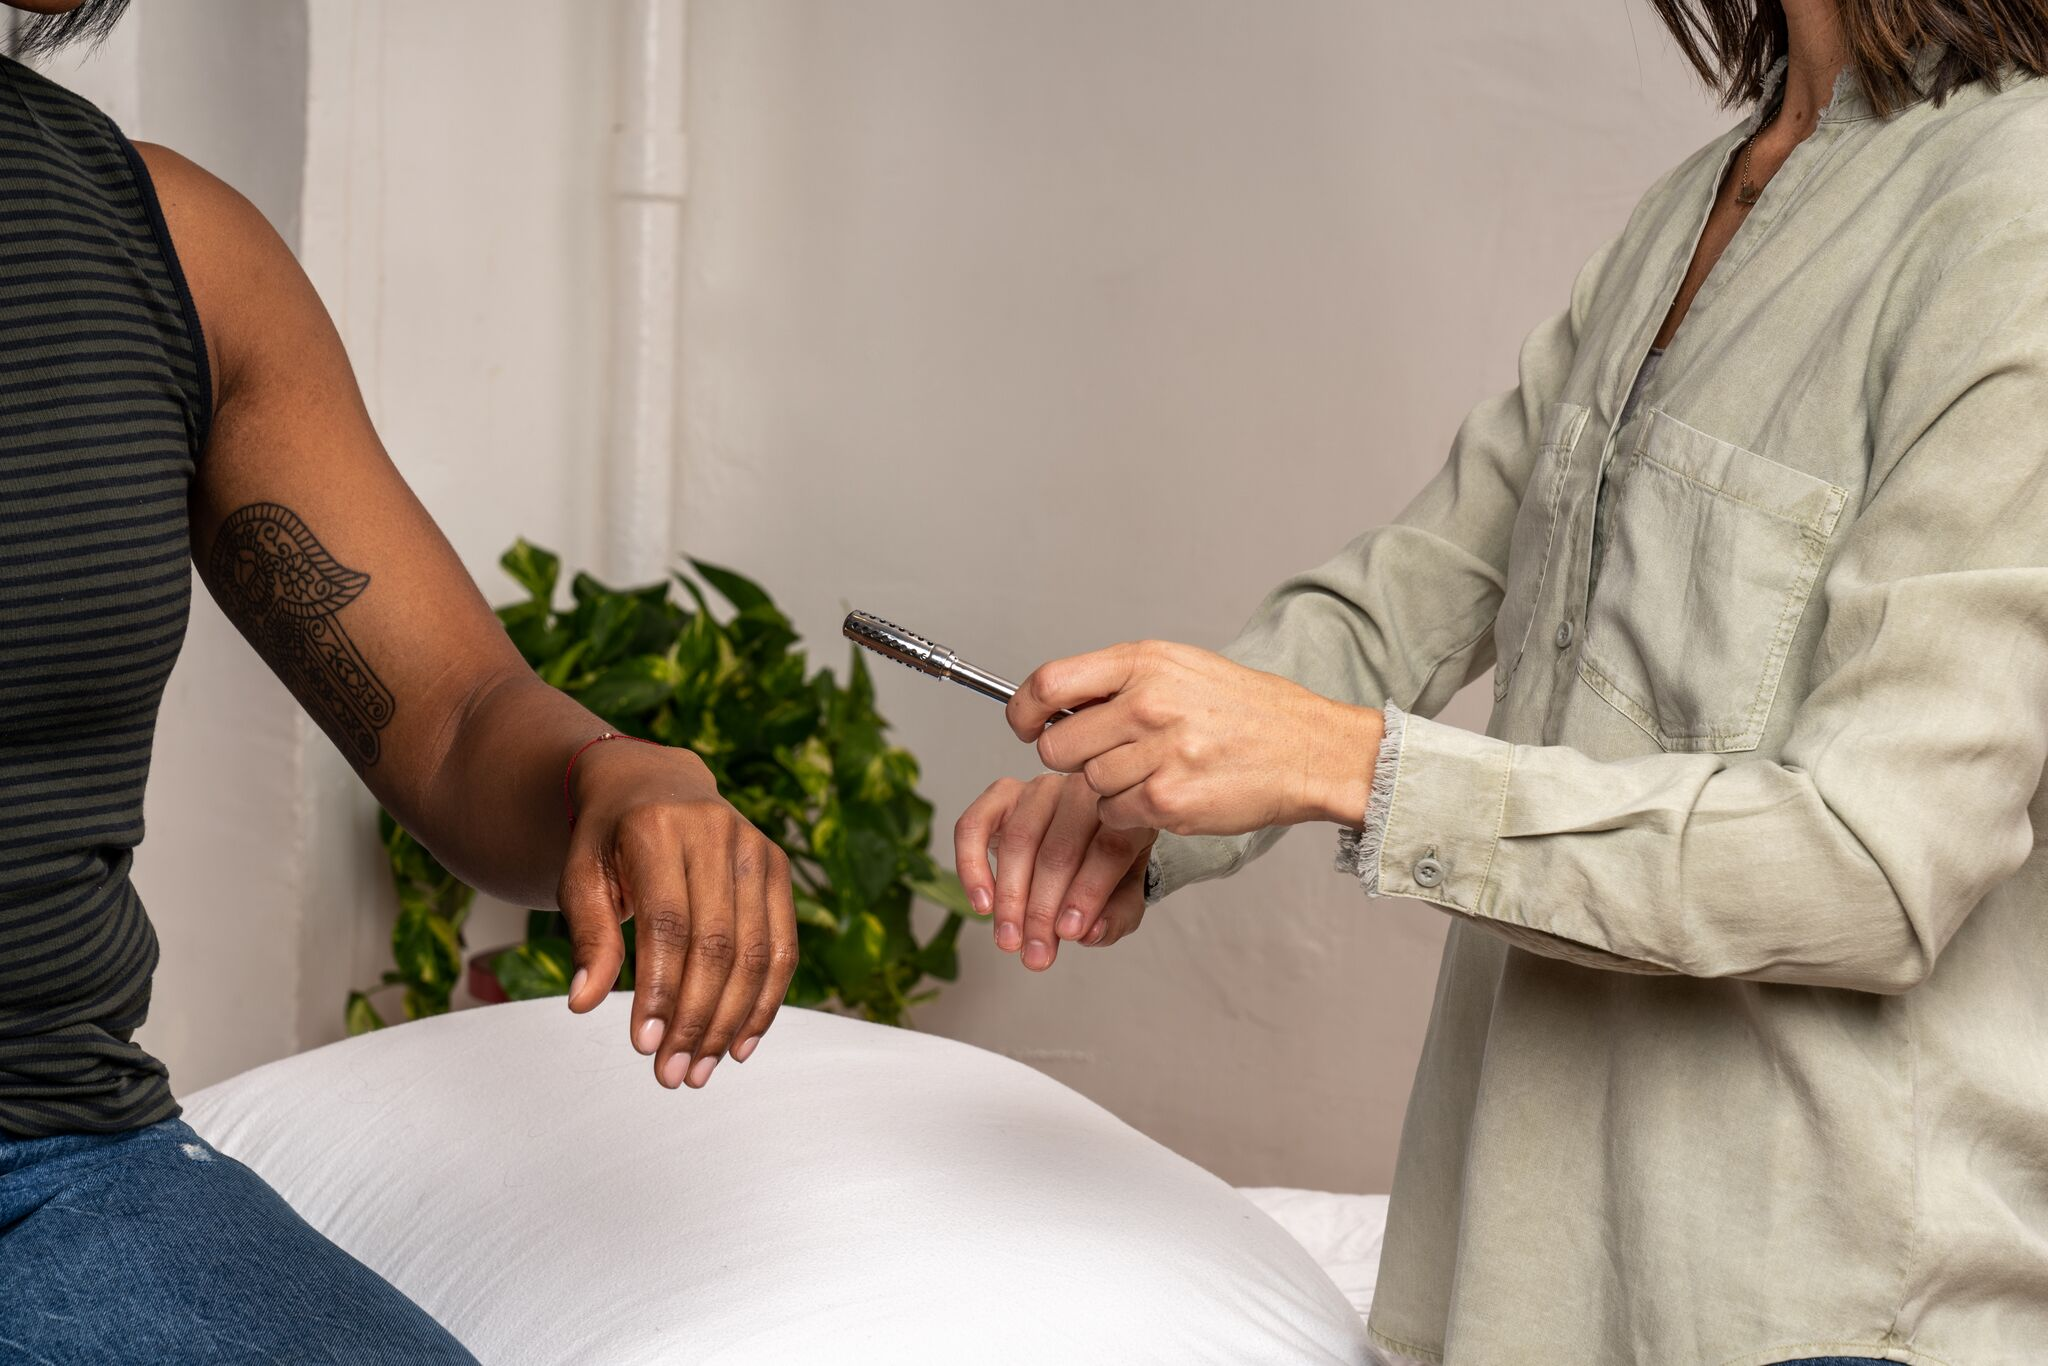 At Home Care - What happens in between your treatments is just as important as what happens during them. This is why we will often send you home with ways to continue on the path to feeling your best. Ear seeds, moxa, self gua sha, and CBD balm or magnesium oil are just a few of the tools we recommend to help further the benefits of treatment.